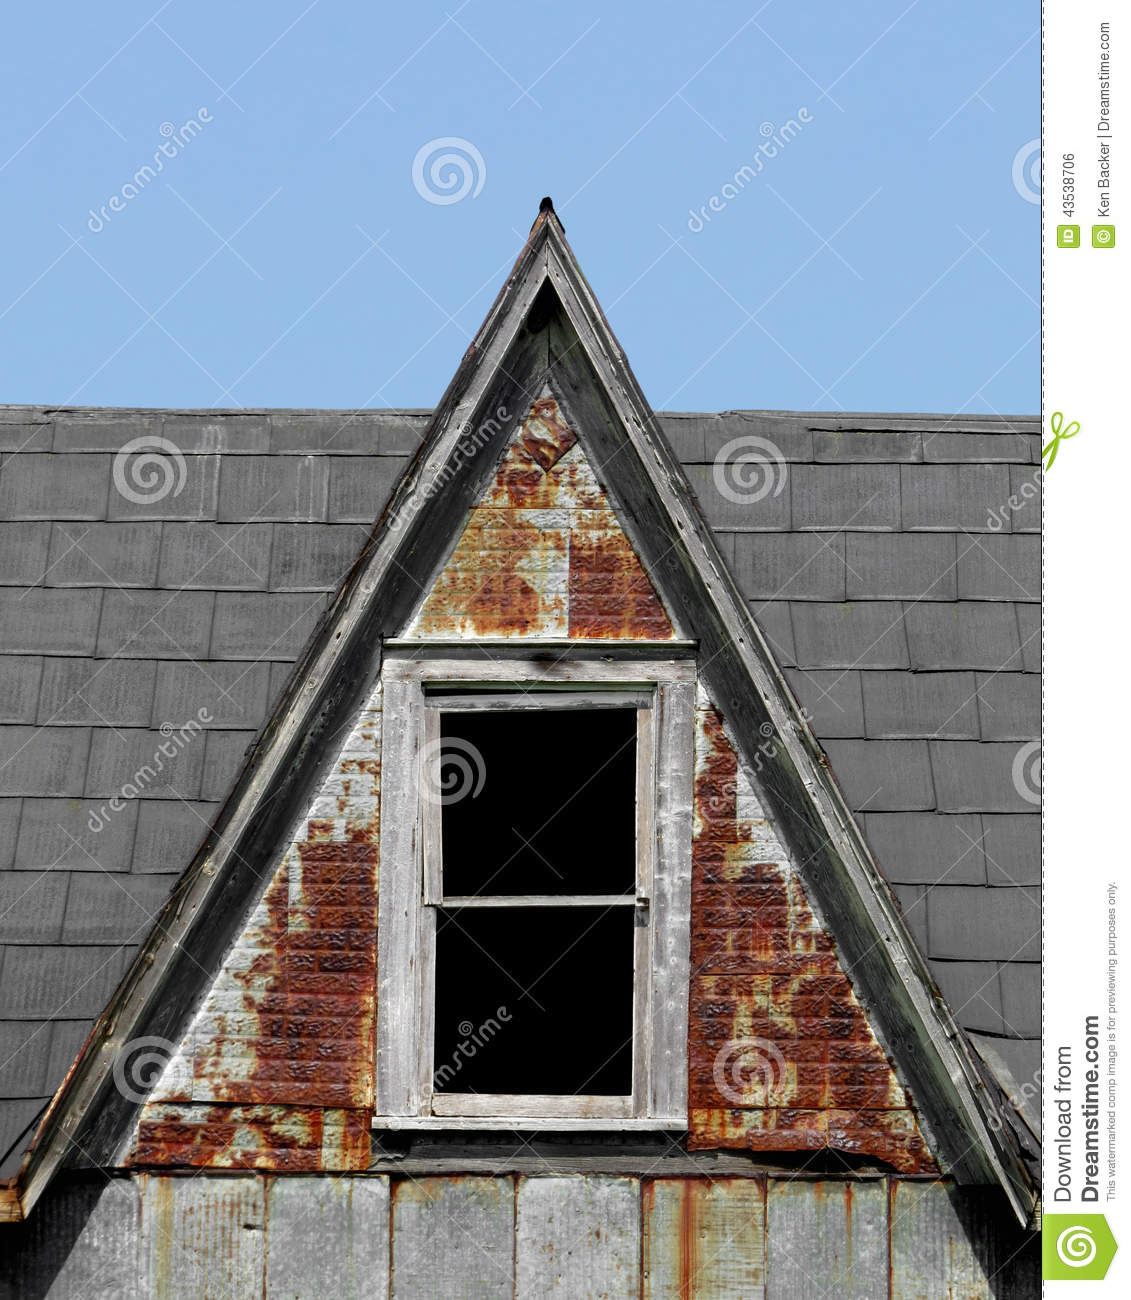 Old Steep Roof Dormer With Window. Stock Photo.